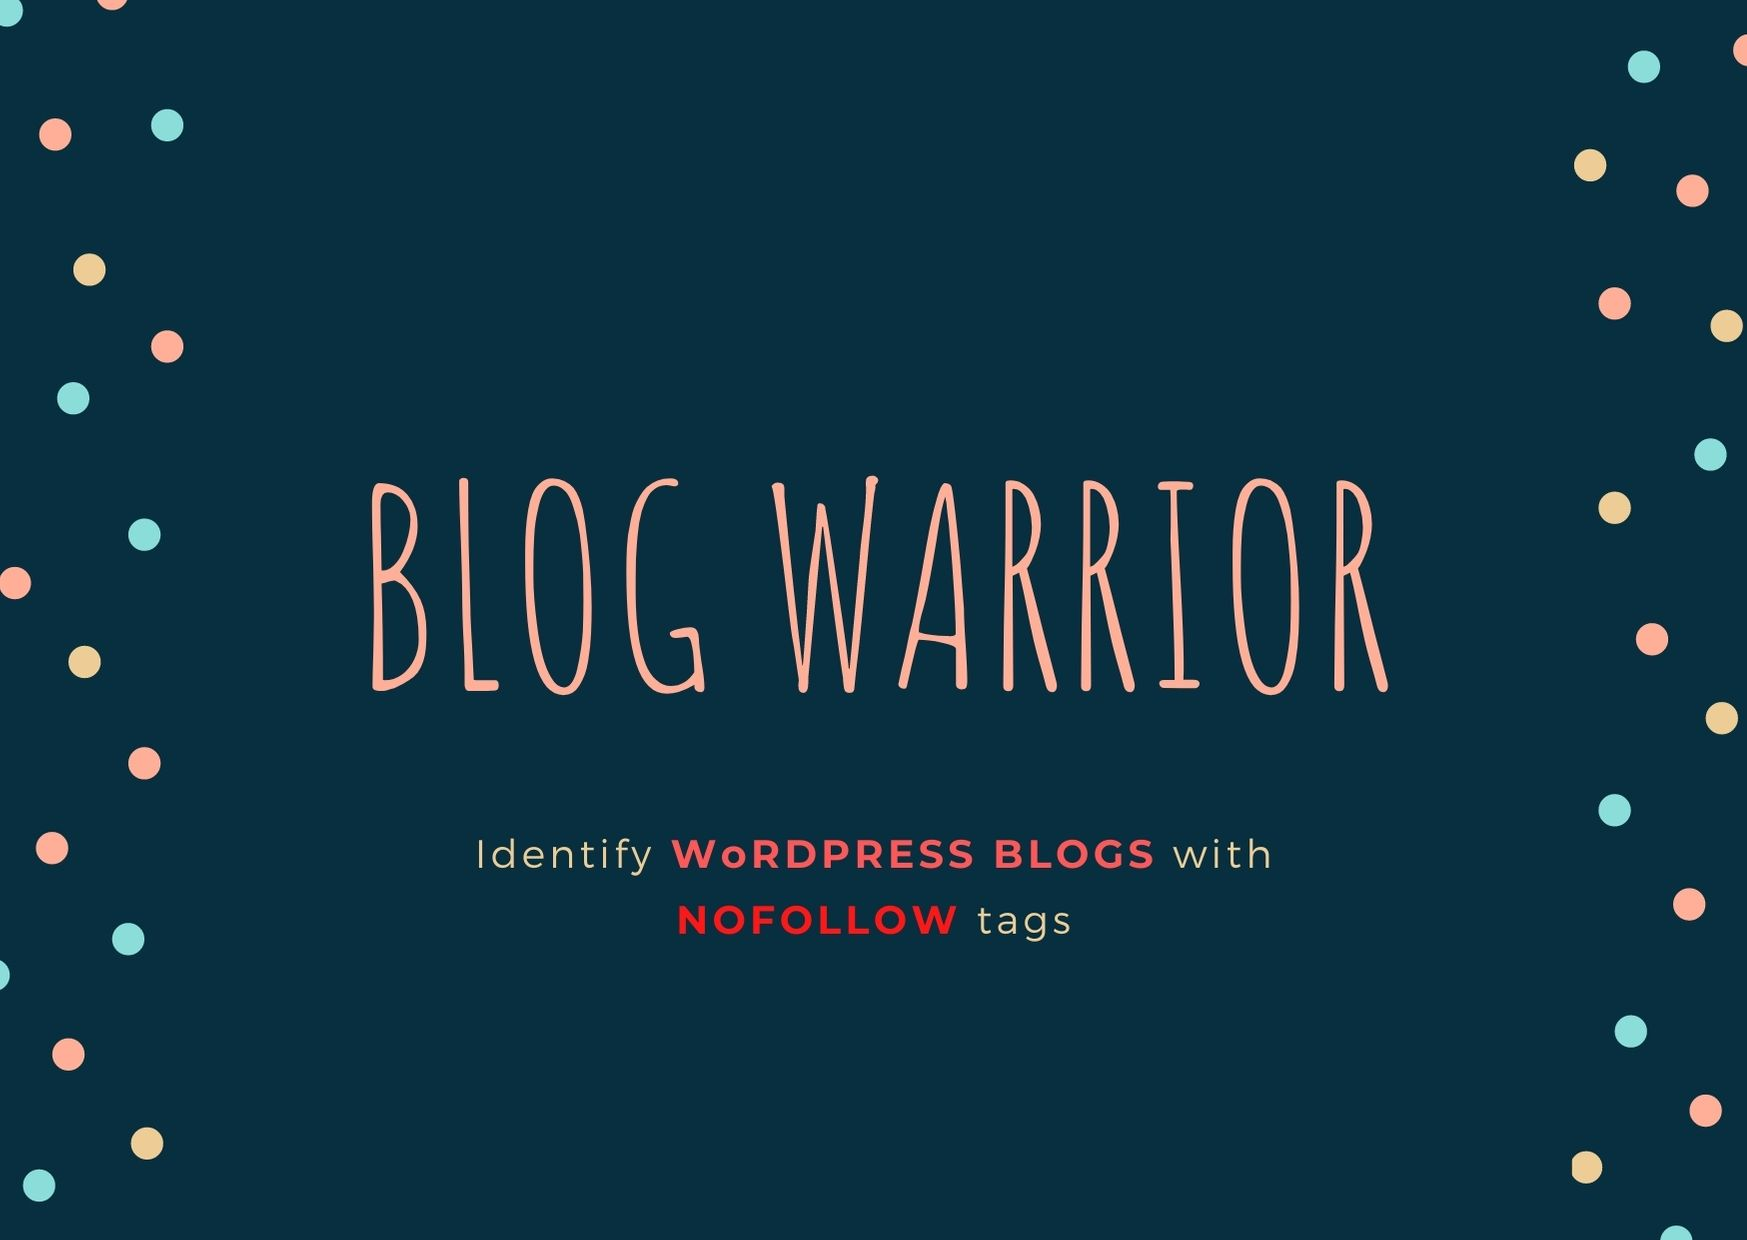 BLOG WARRIOR - Identify WORDPRESS BLOGS with NOFOLLOW tag